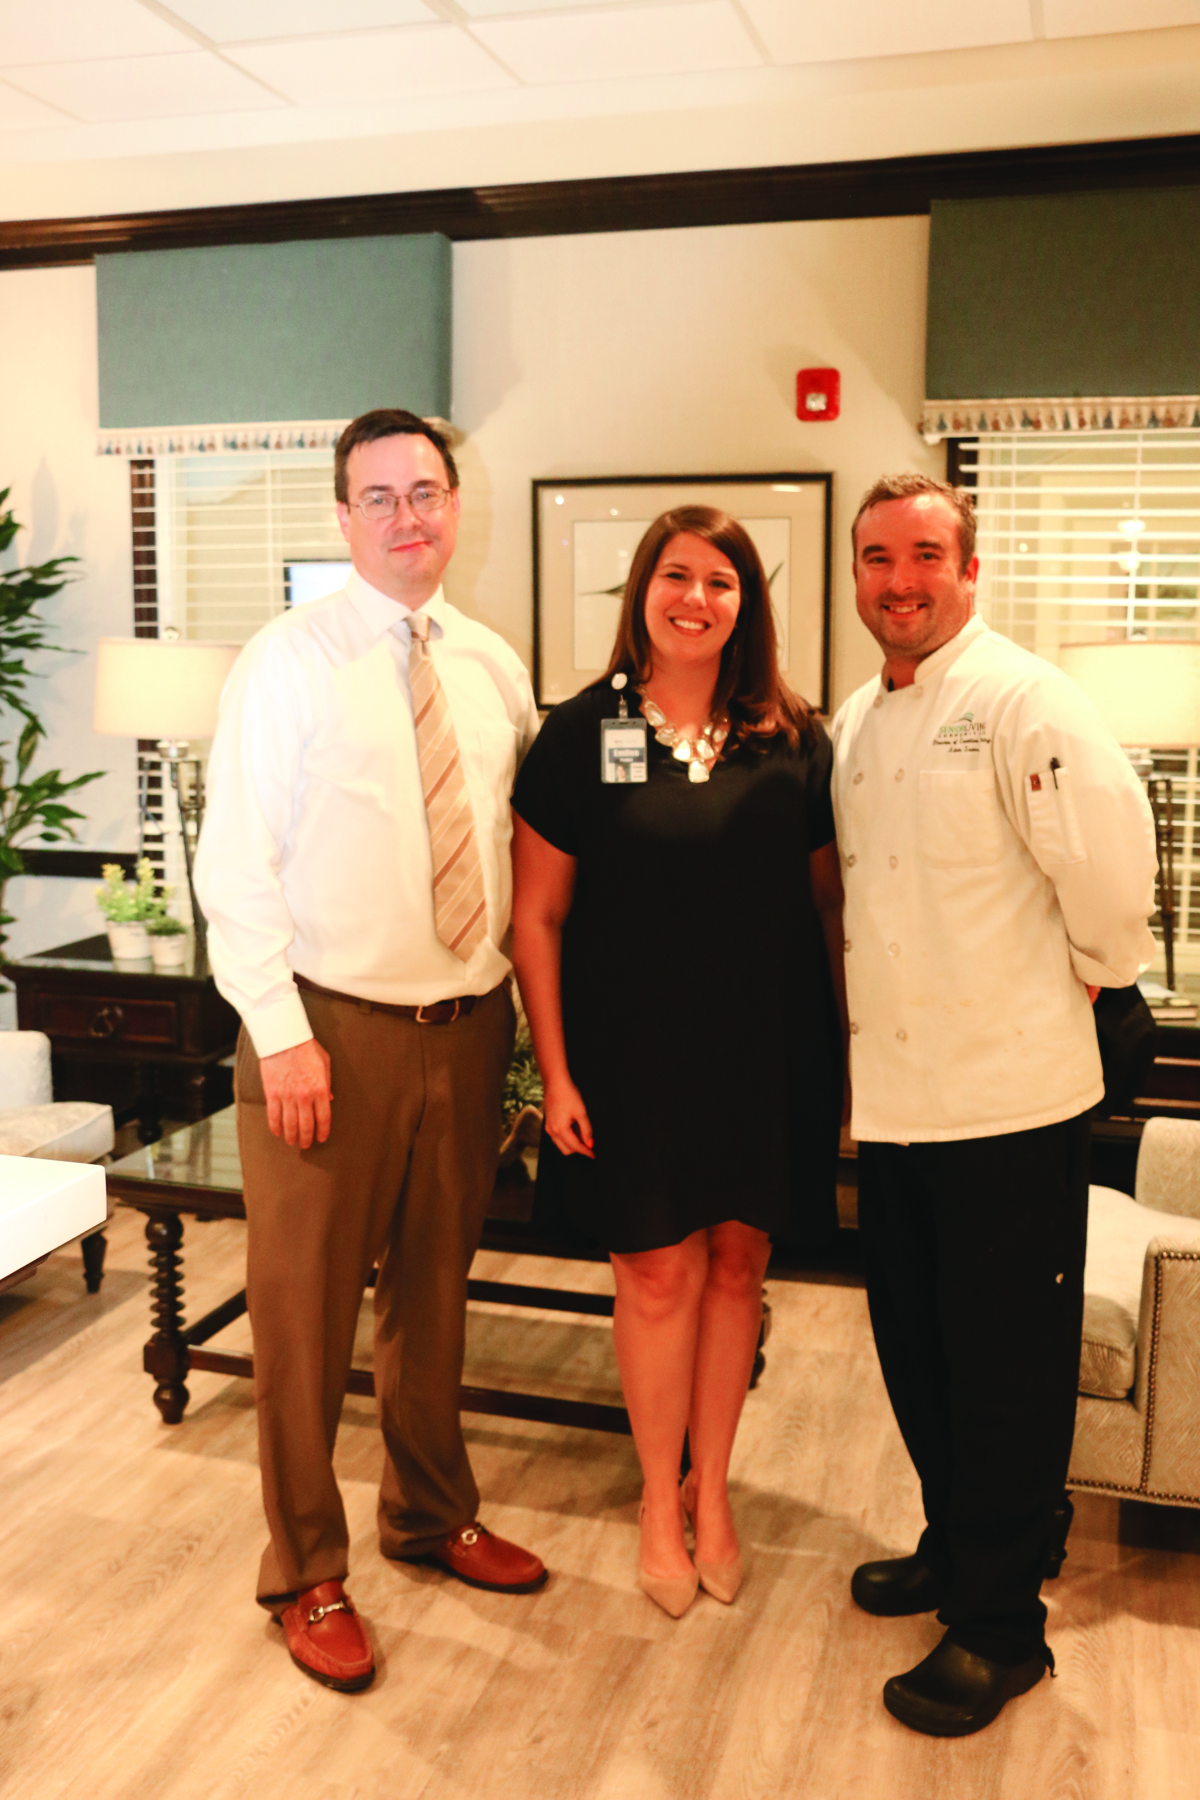 Wellmore team members Jack Myers and Emilee Padget, lifestyle advisors, and Adam Sears, director of creative dining.